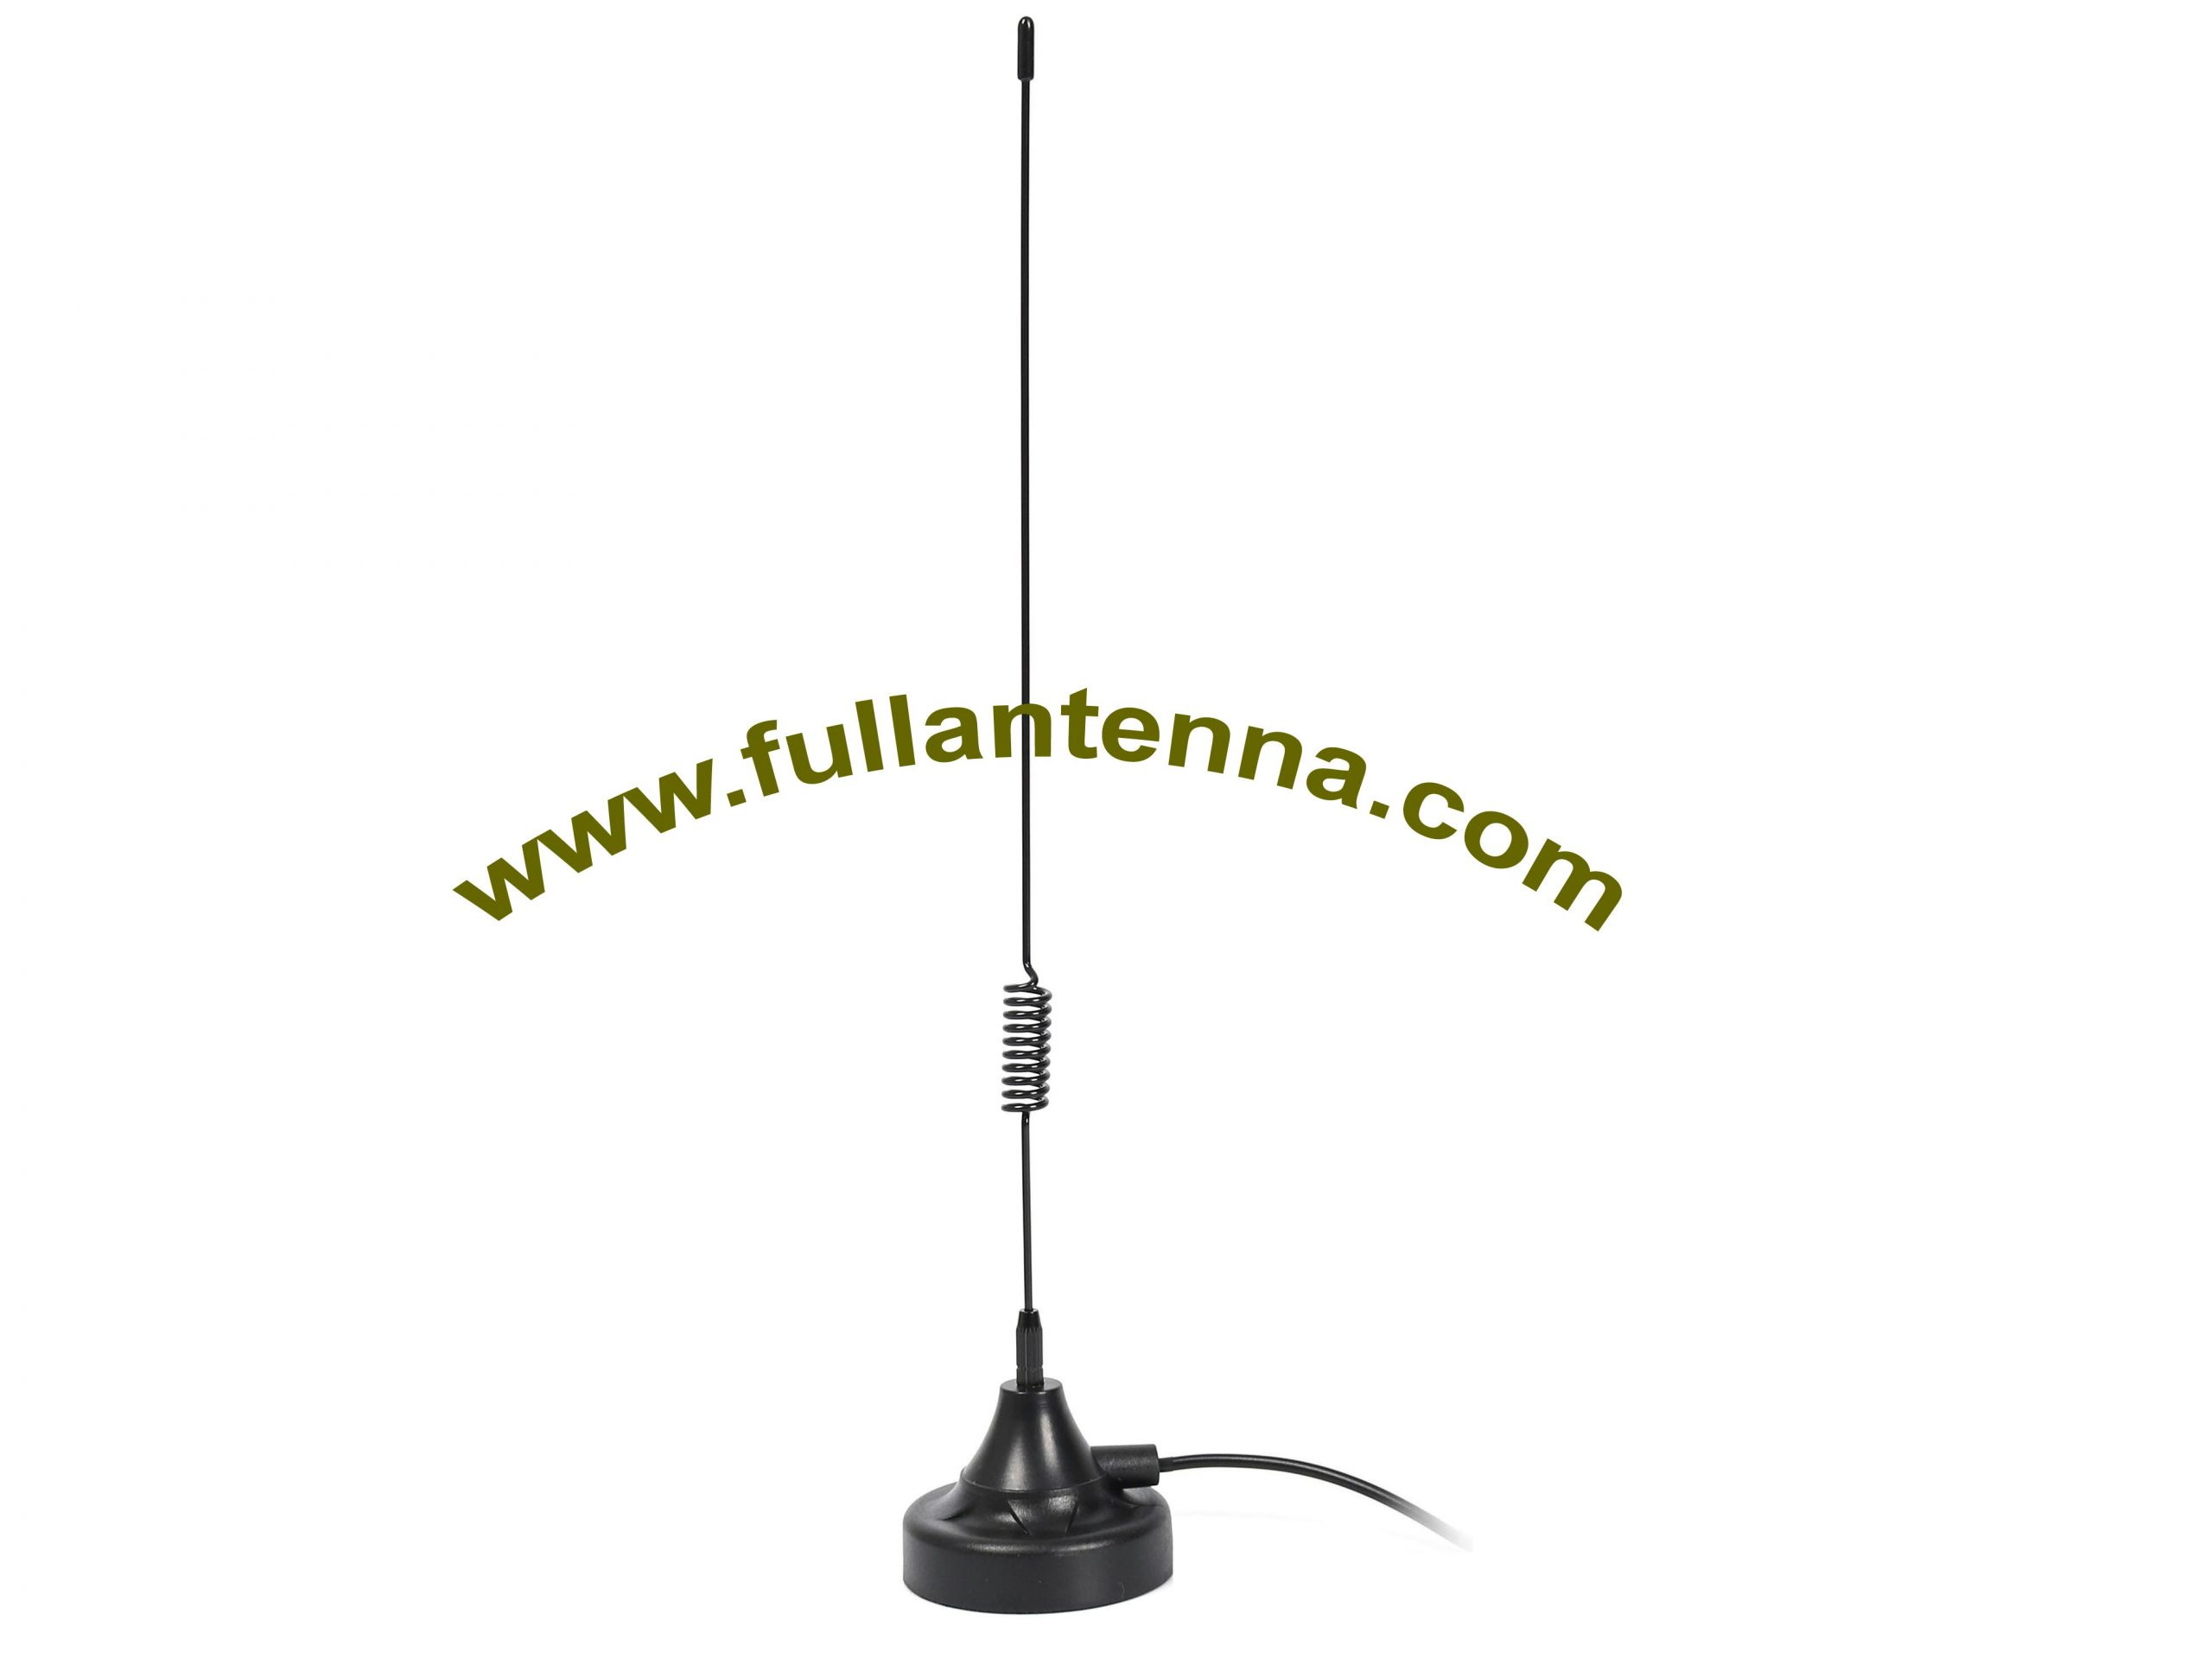 P/N:FAGSM.50,GSM External Antenna, strong magnetic mount 900 1800mhz frequency